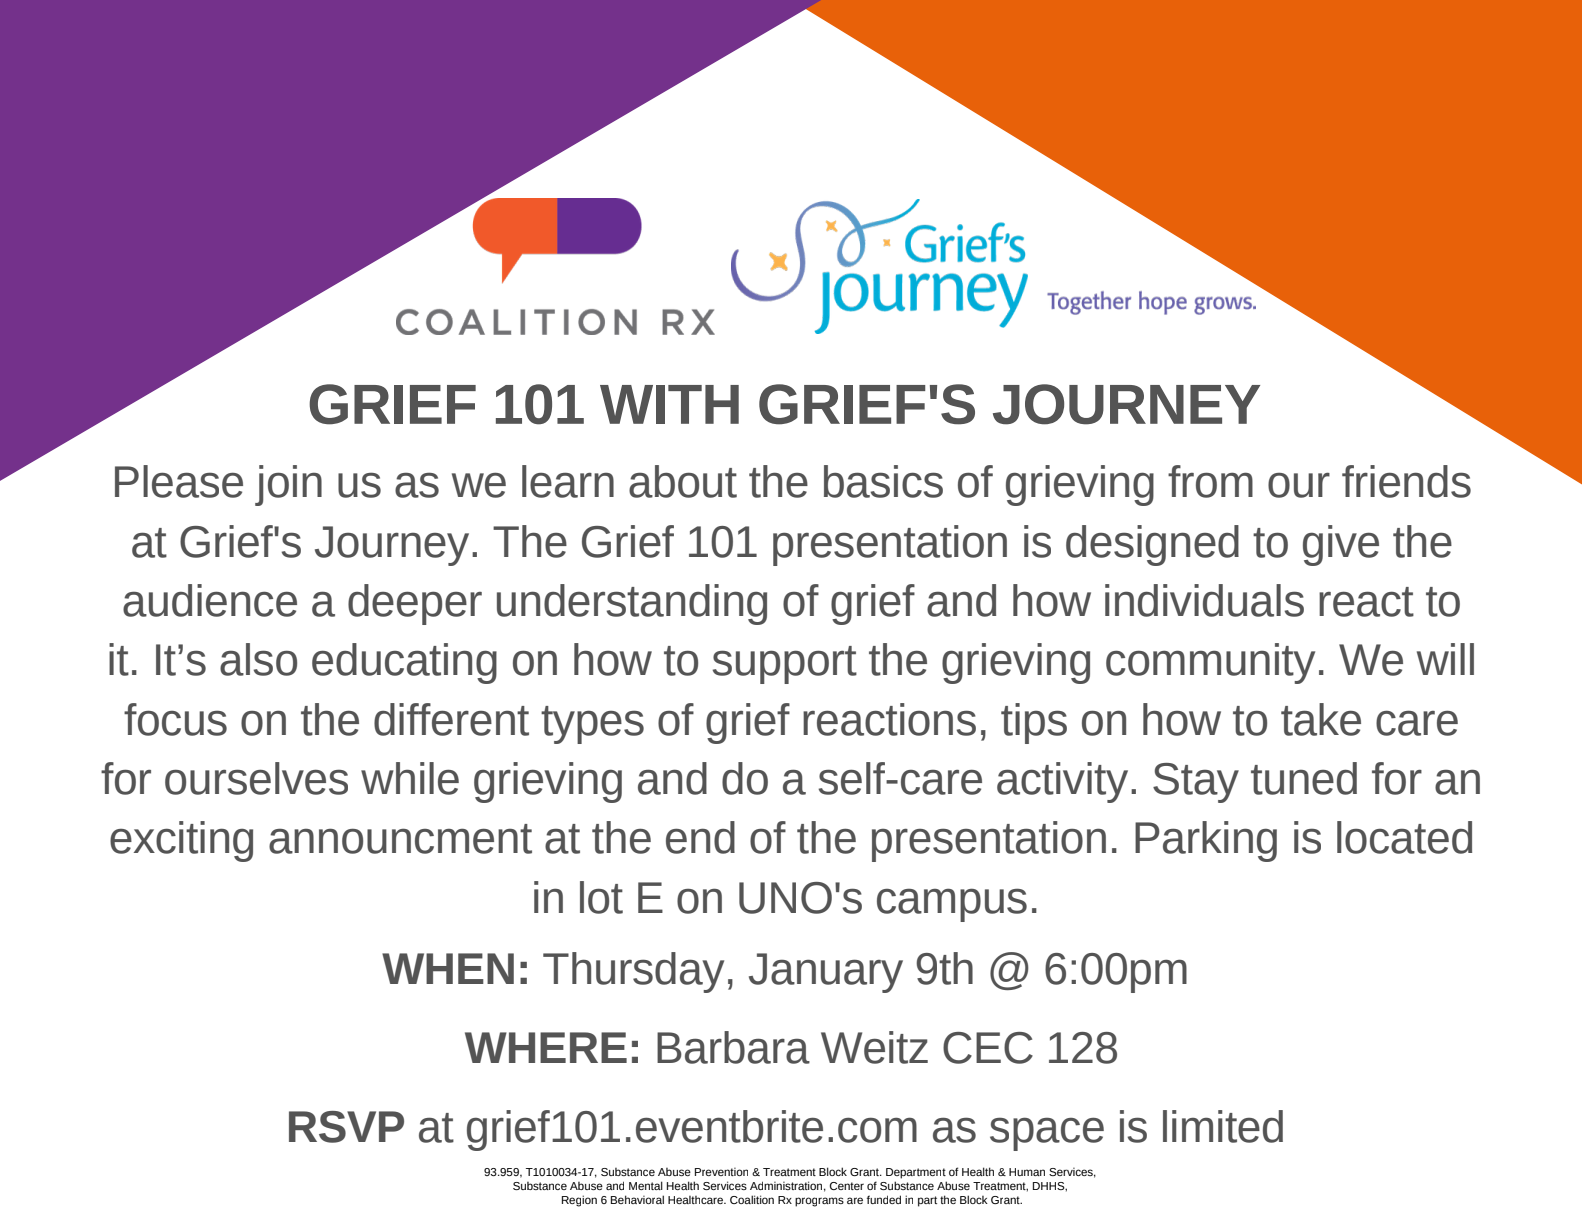 Grief 101 With Grief's Journey